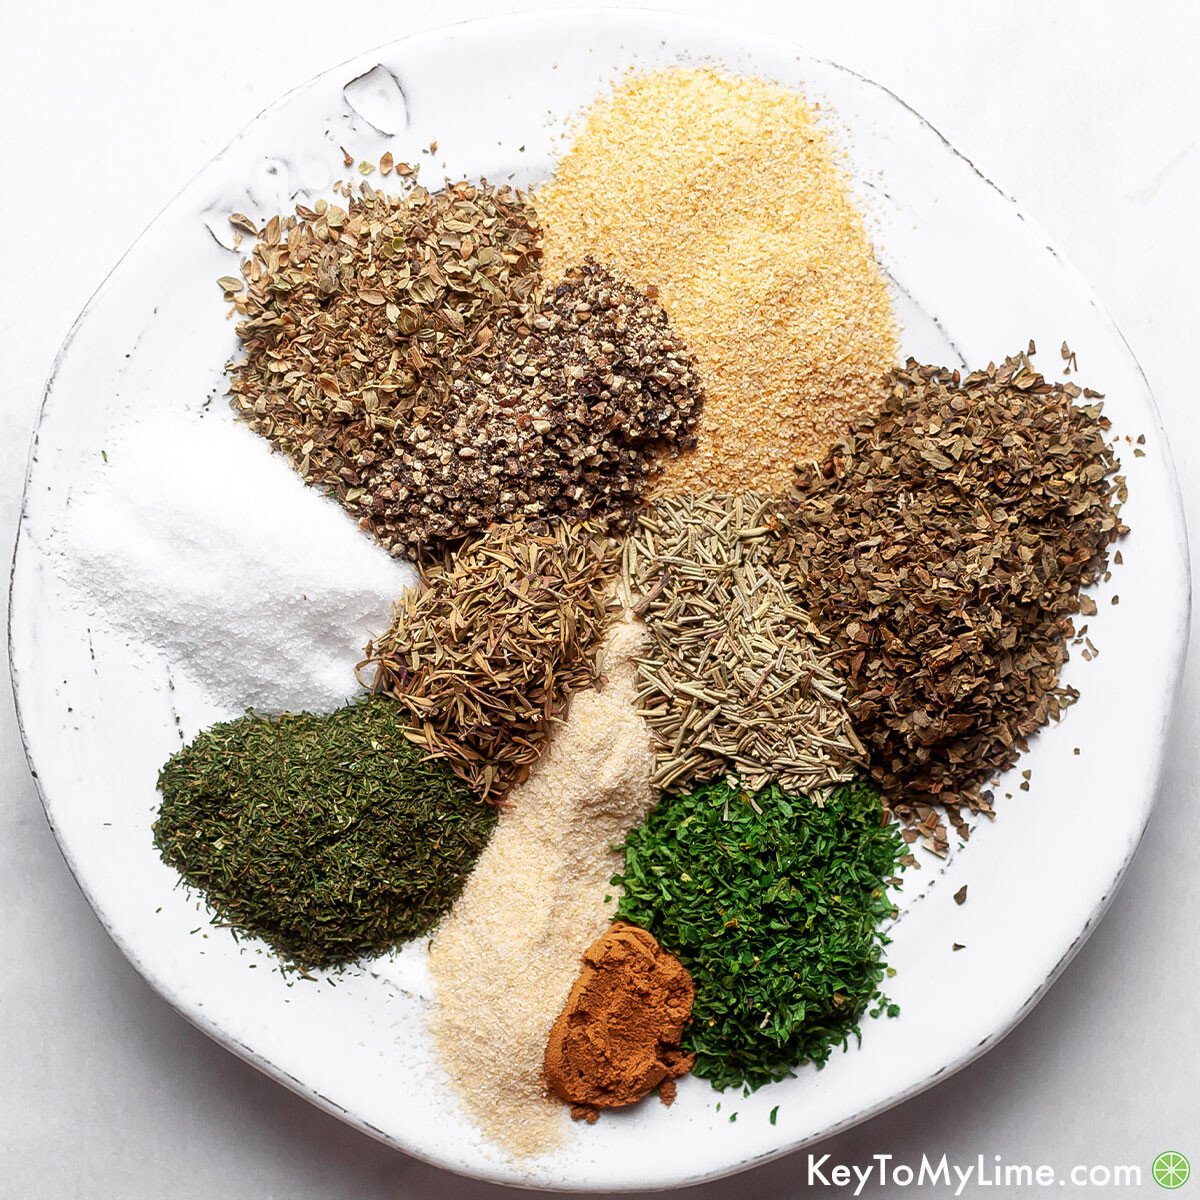 Mediterranean seasoning ingredients on a white plate.